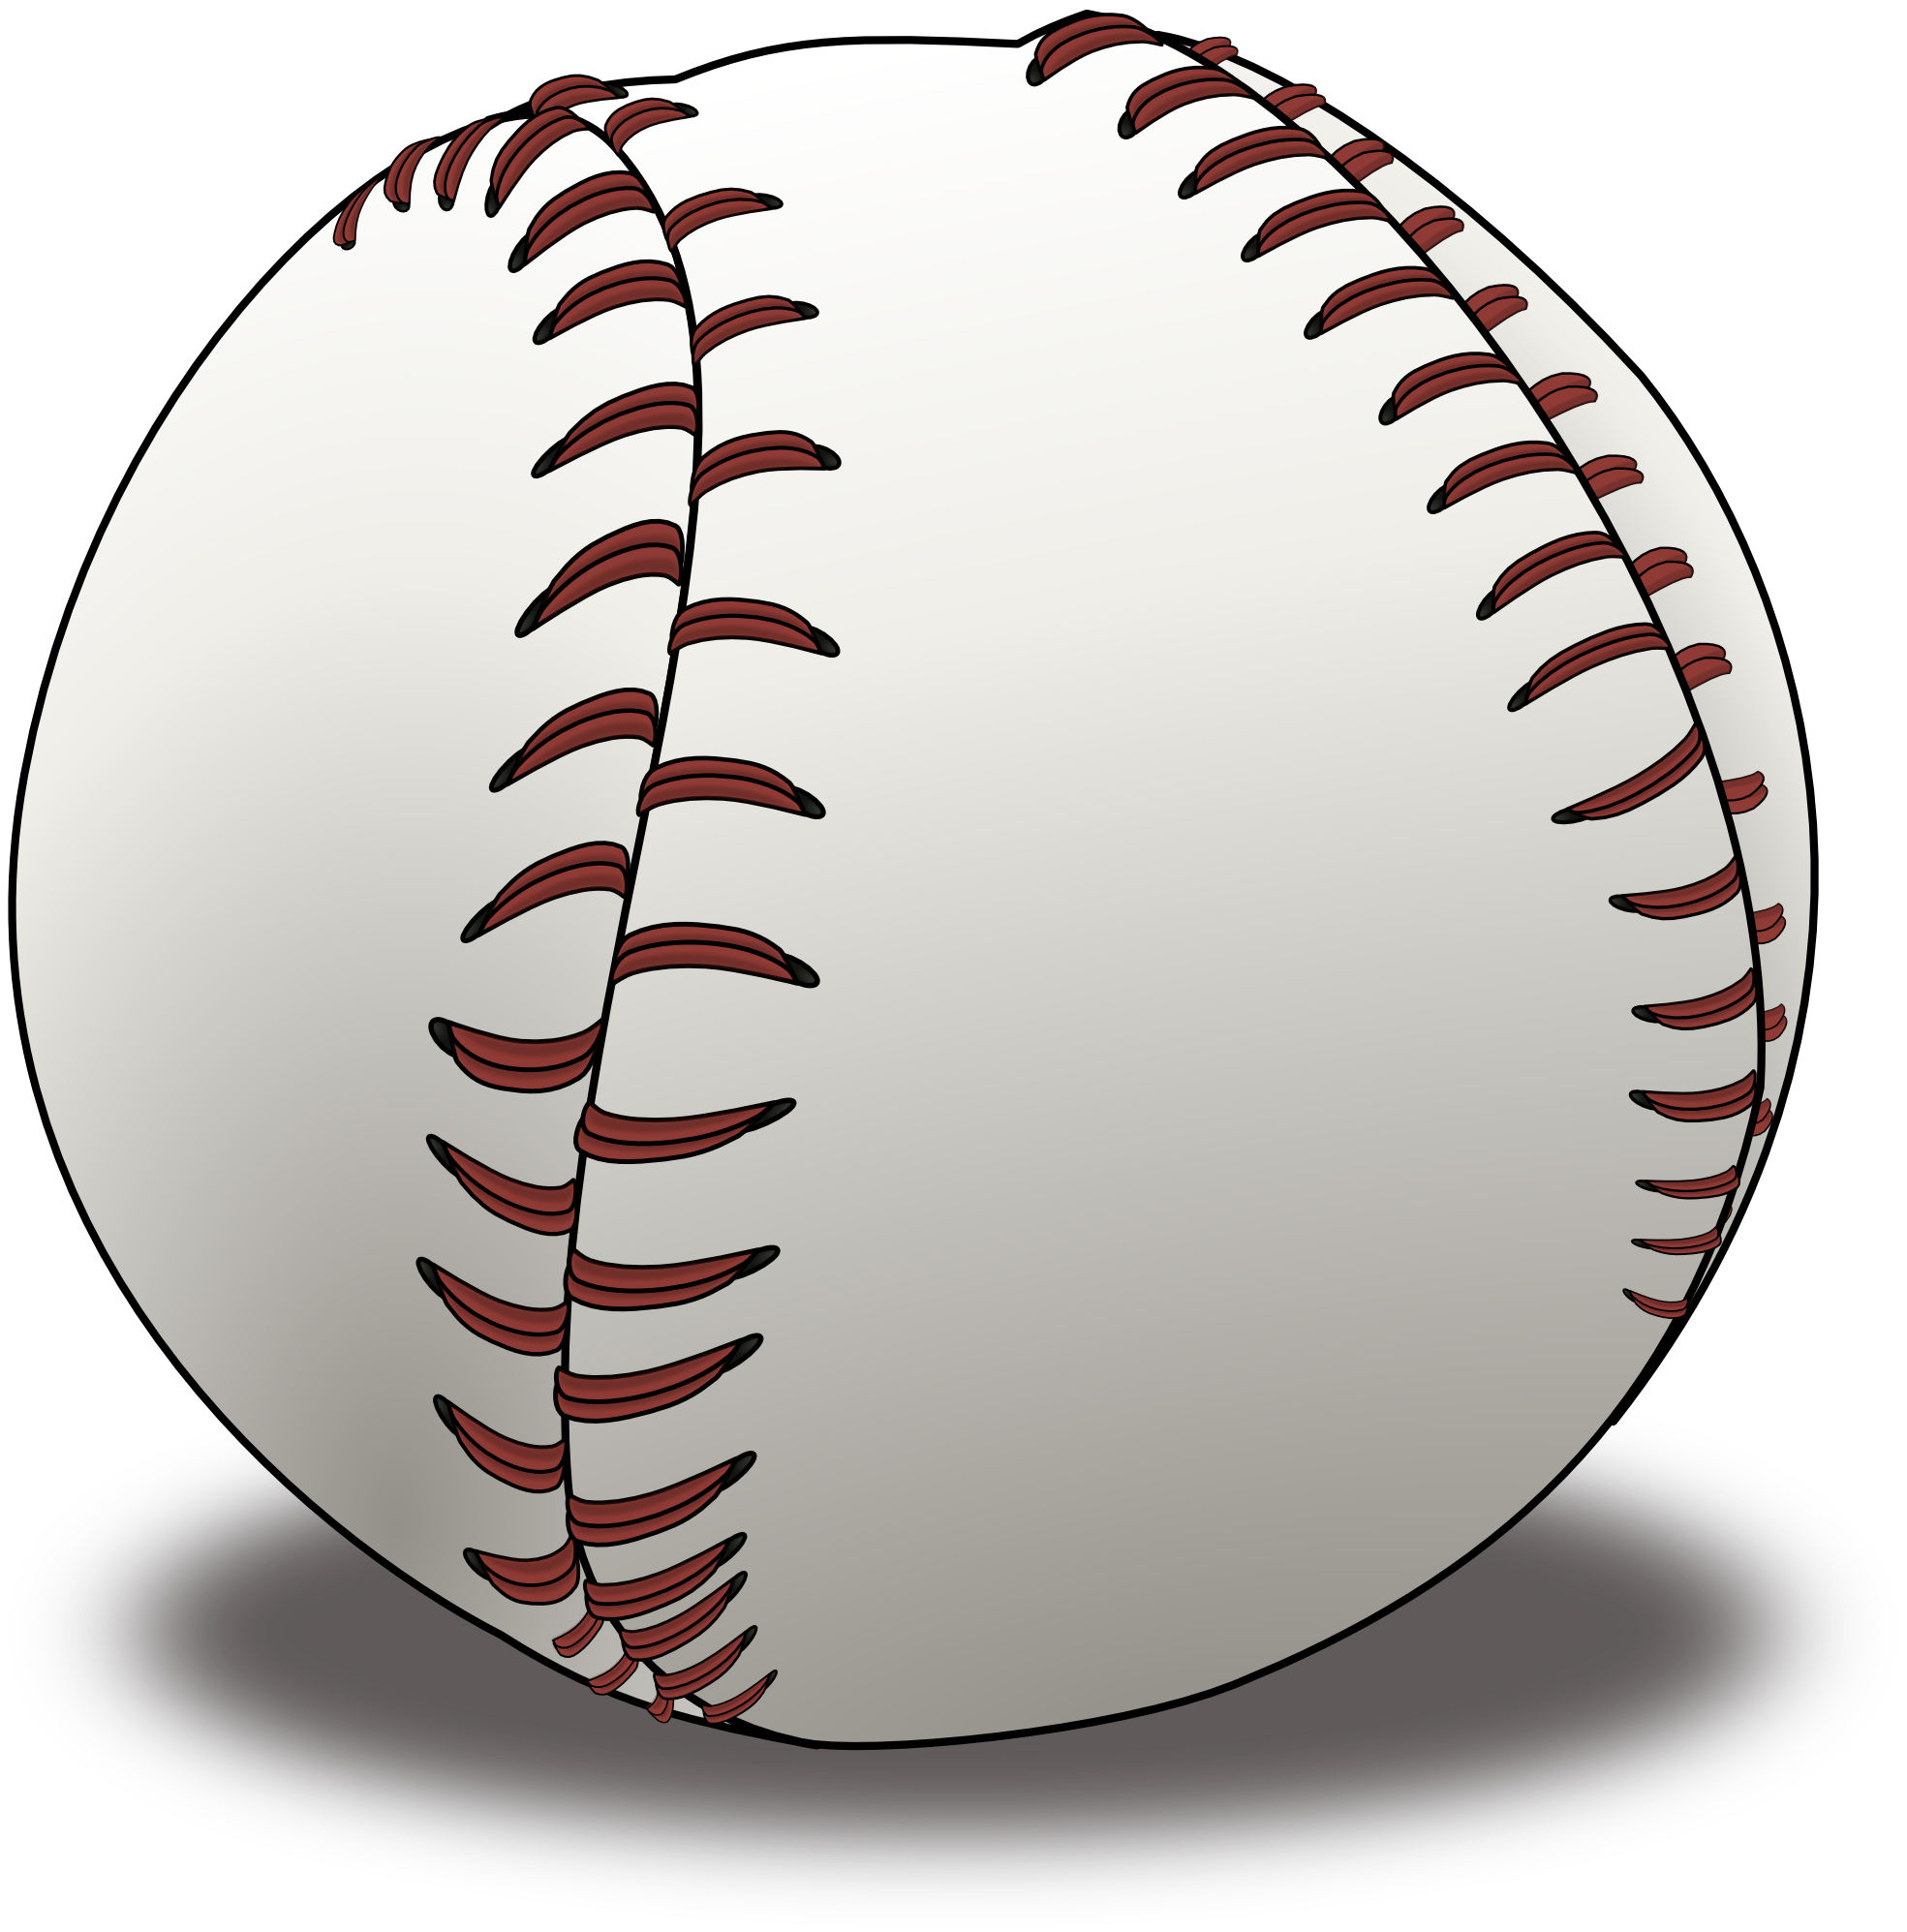 Free flying baseball clipart picture free library Baseball png clipart #35349 - Free Icons and PNG Backgrounds picture free library